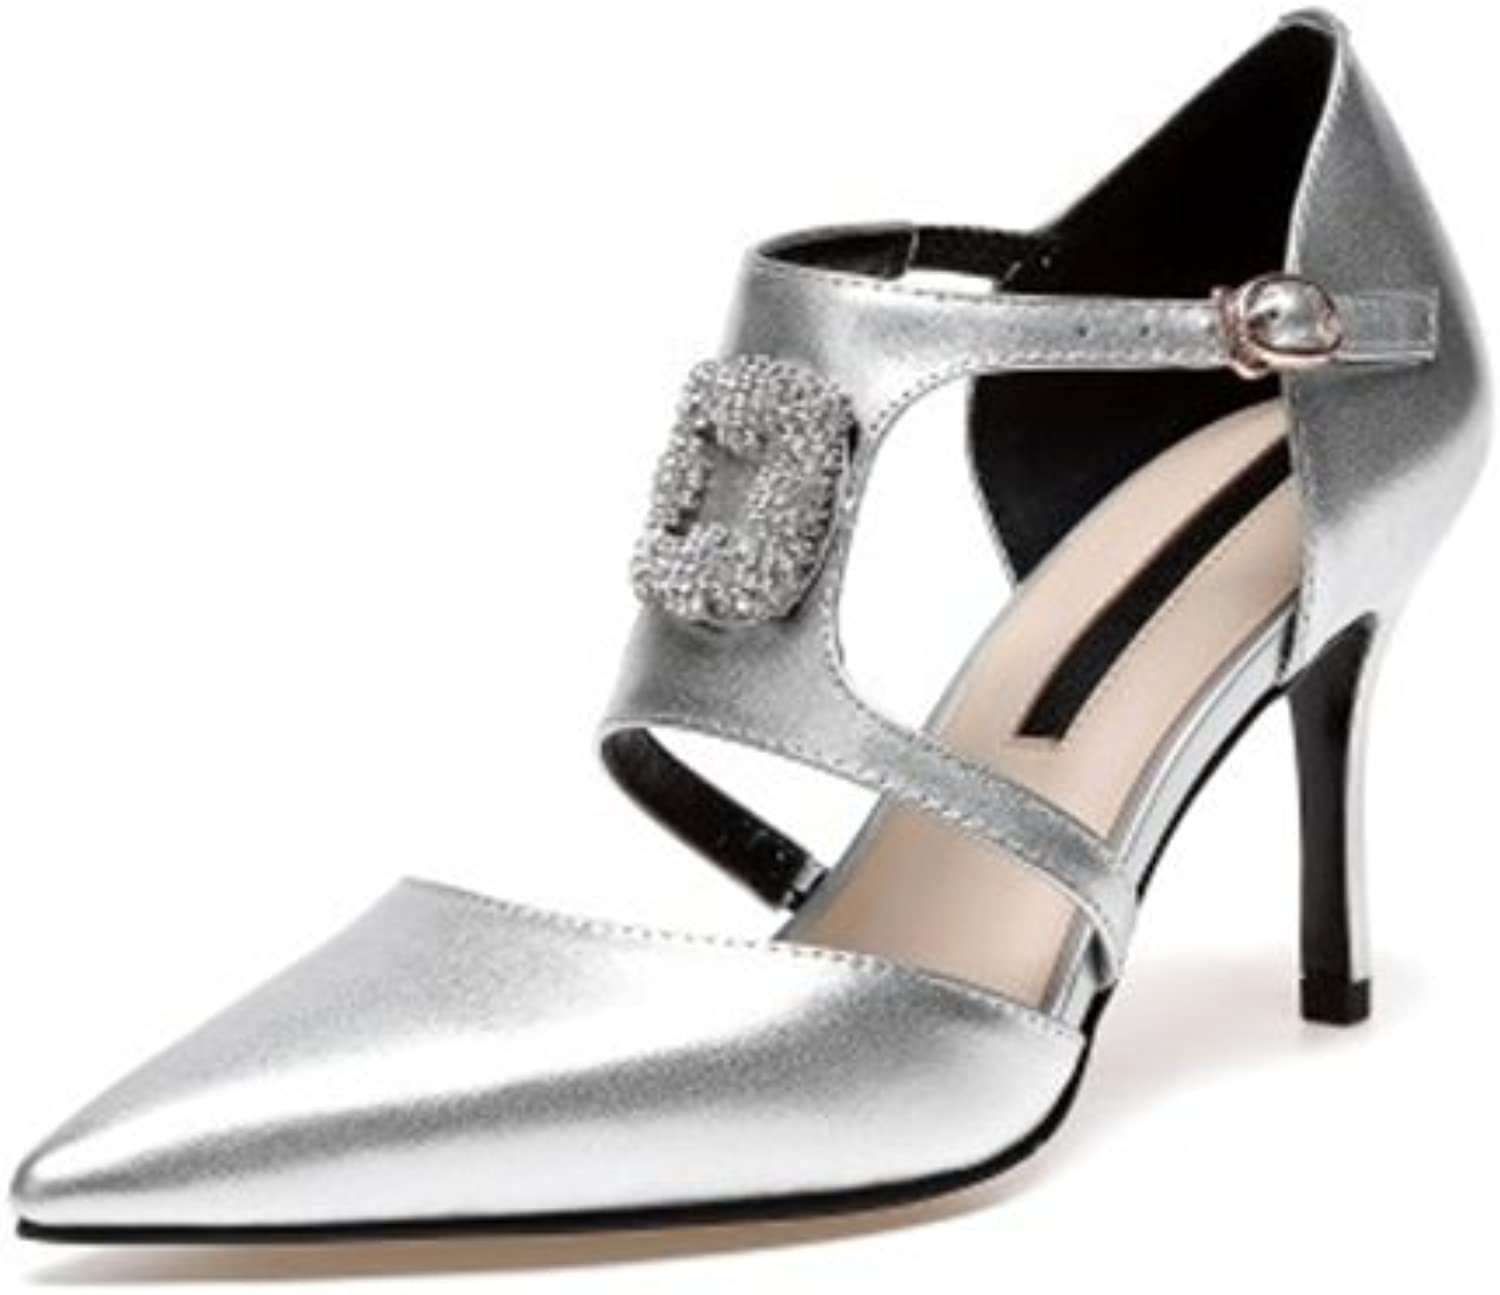 Jiang Womens's shoes 2018 New High Heel Sandals Europe America Fashion Pointed Rhinestone, Square Buckle Stiletto Heel Ladies shoes Sandals